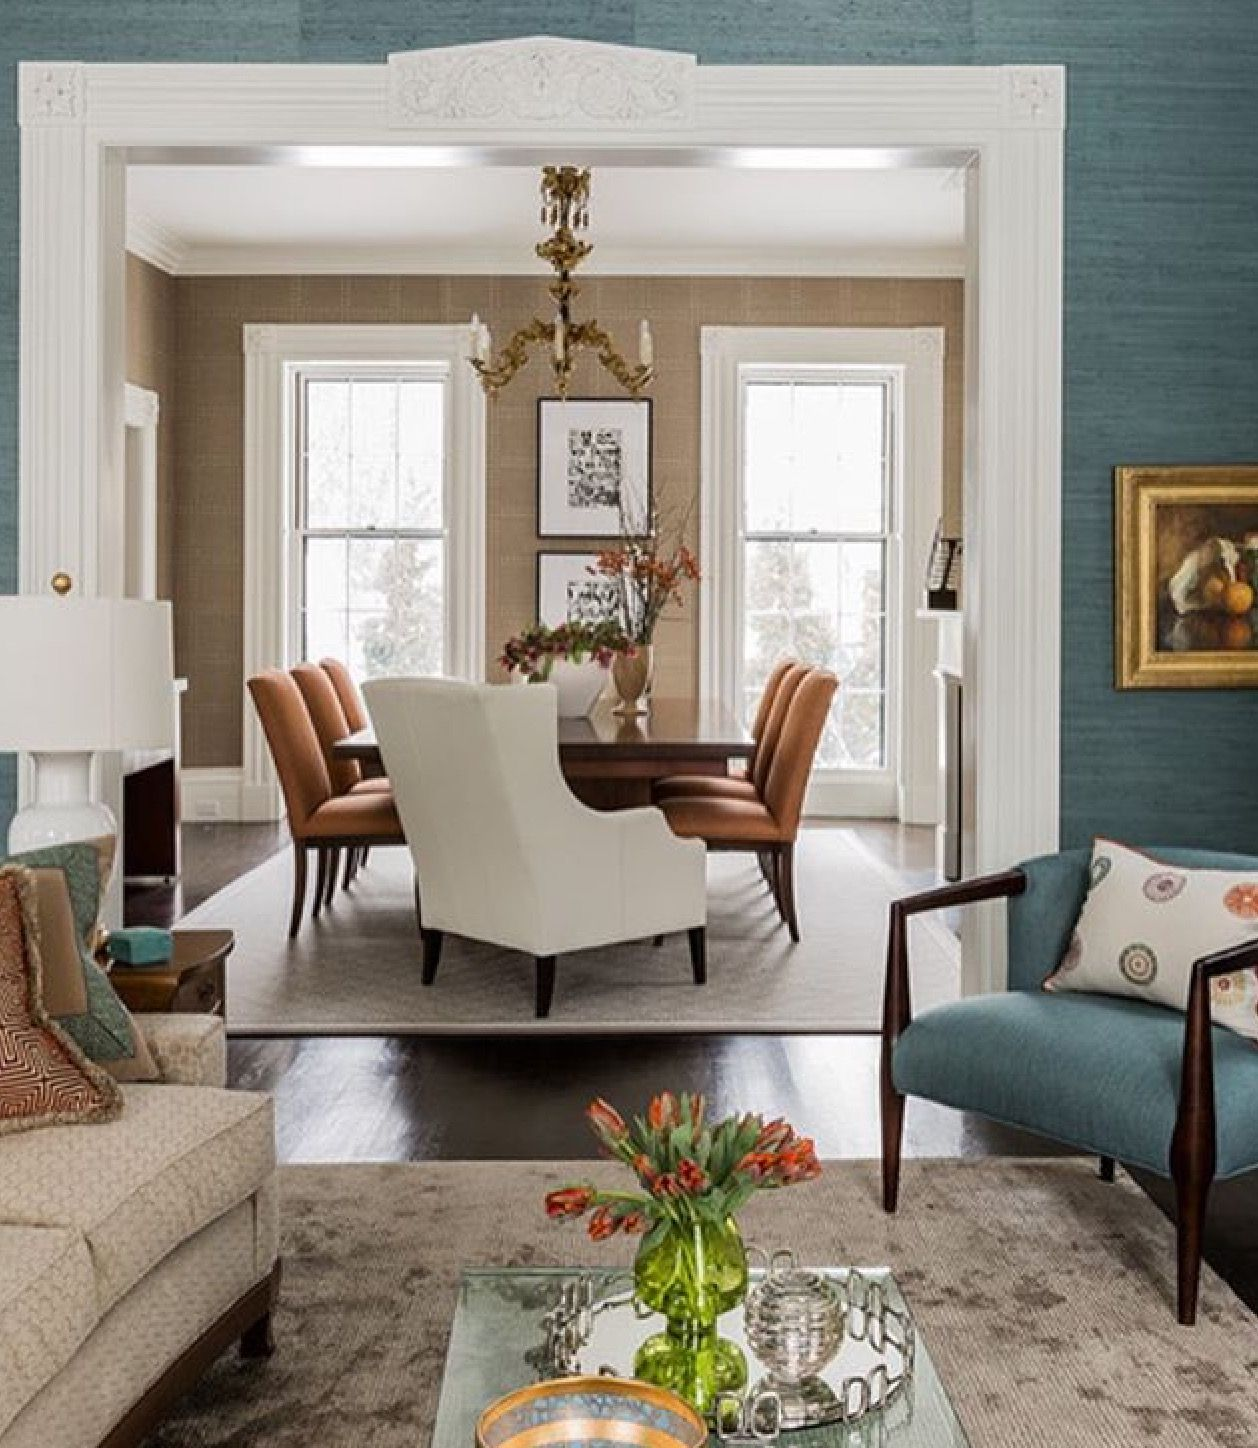 Pin by Hudson Sherry on Home Ideas Transitional dining